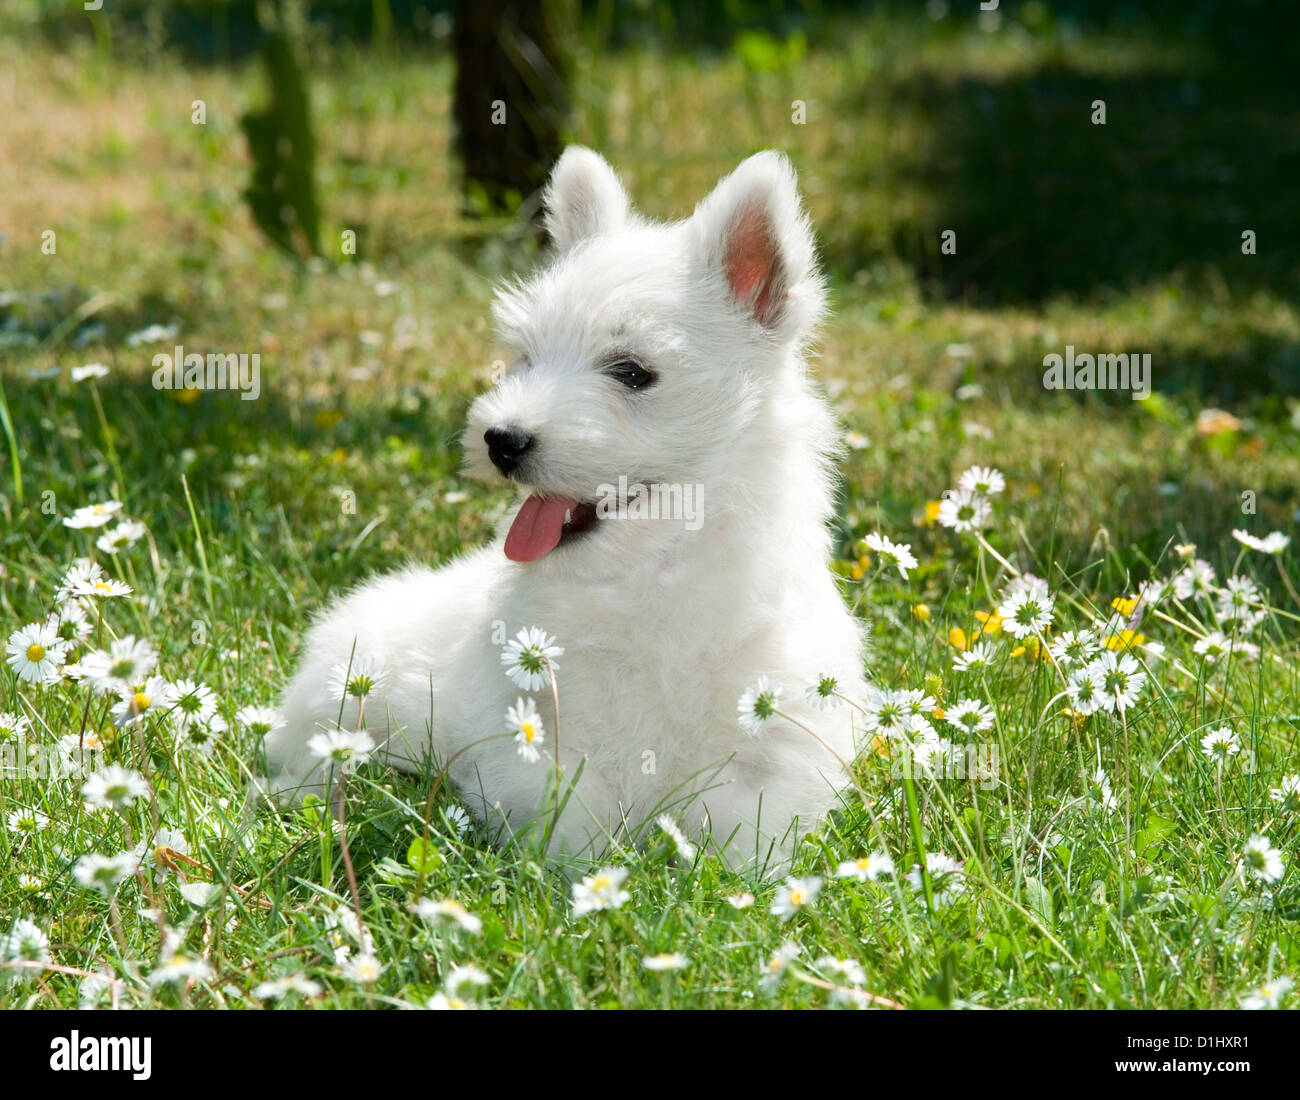 Outdoor portrait of West Highland White Terrier dog in the garden - Stock Image